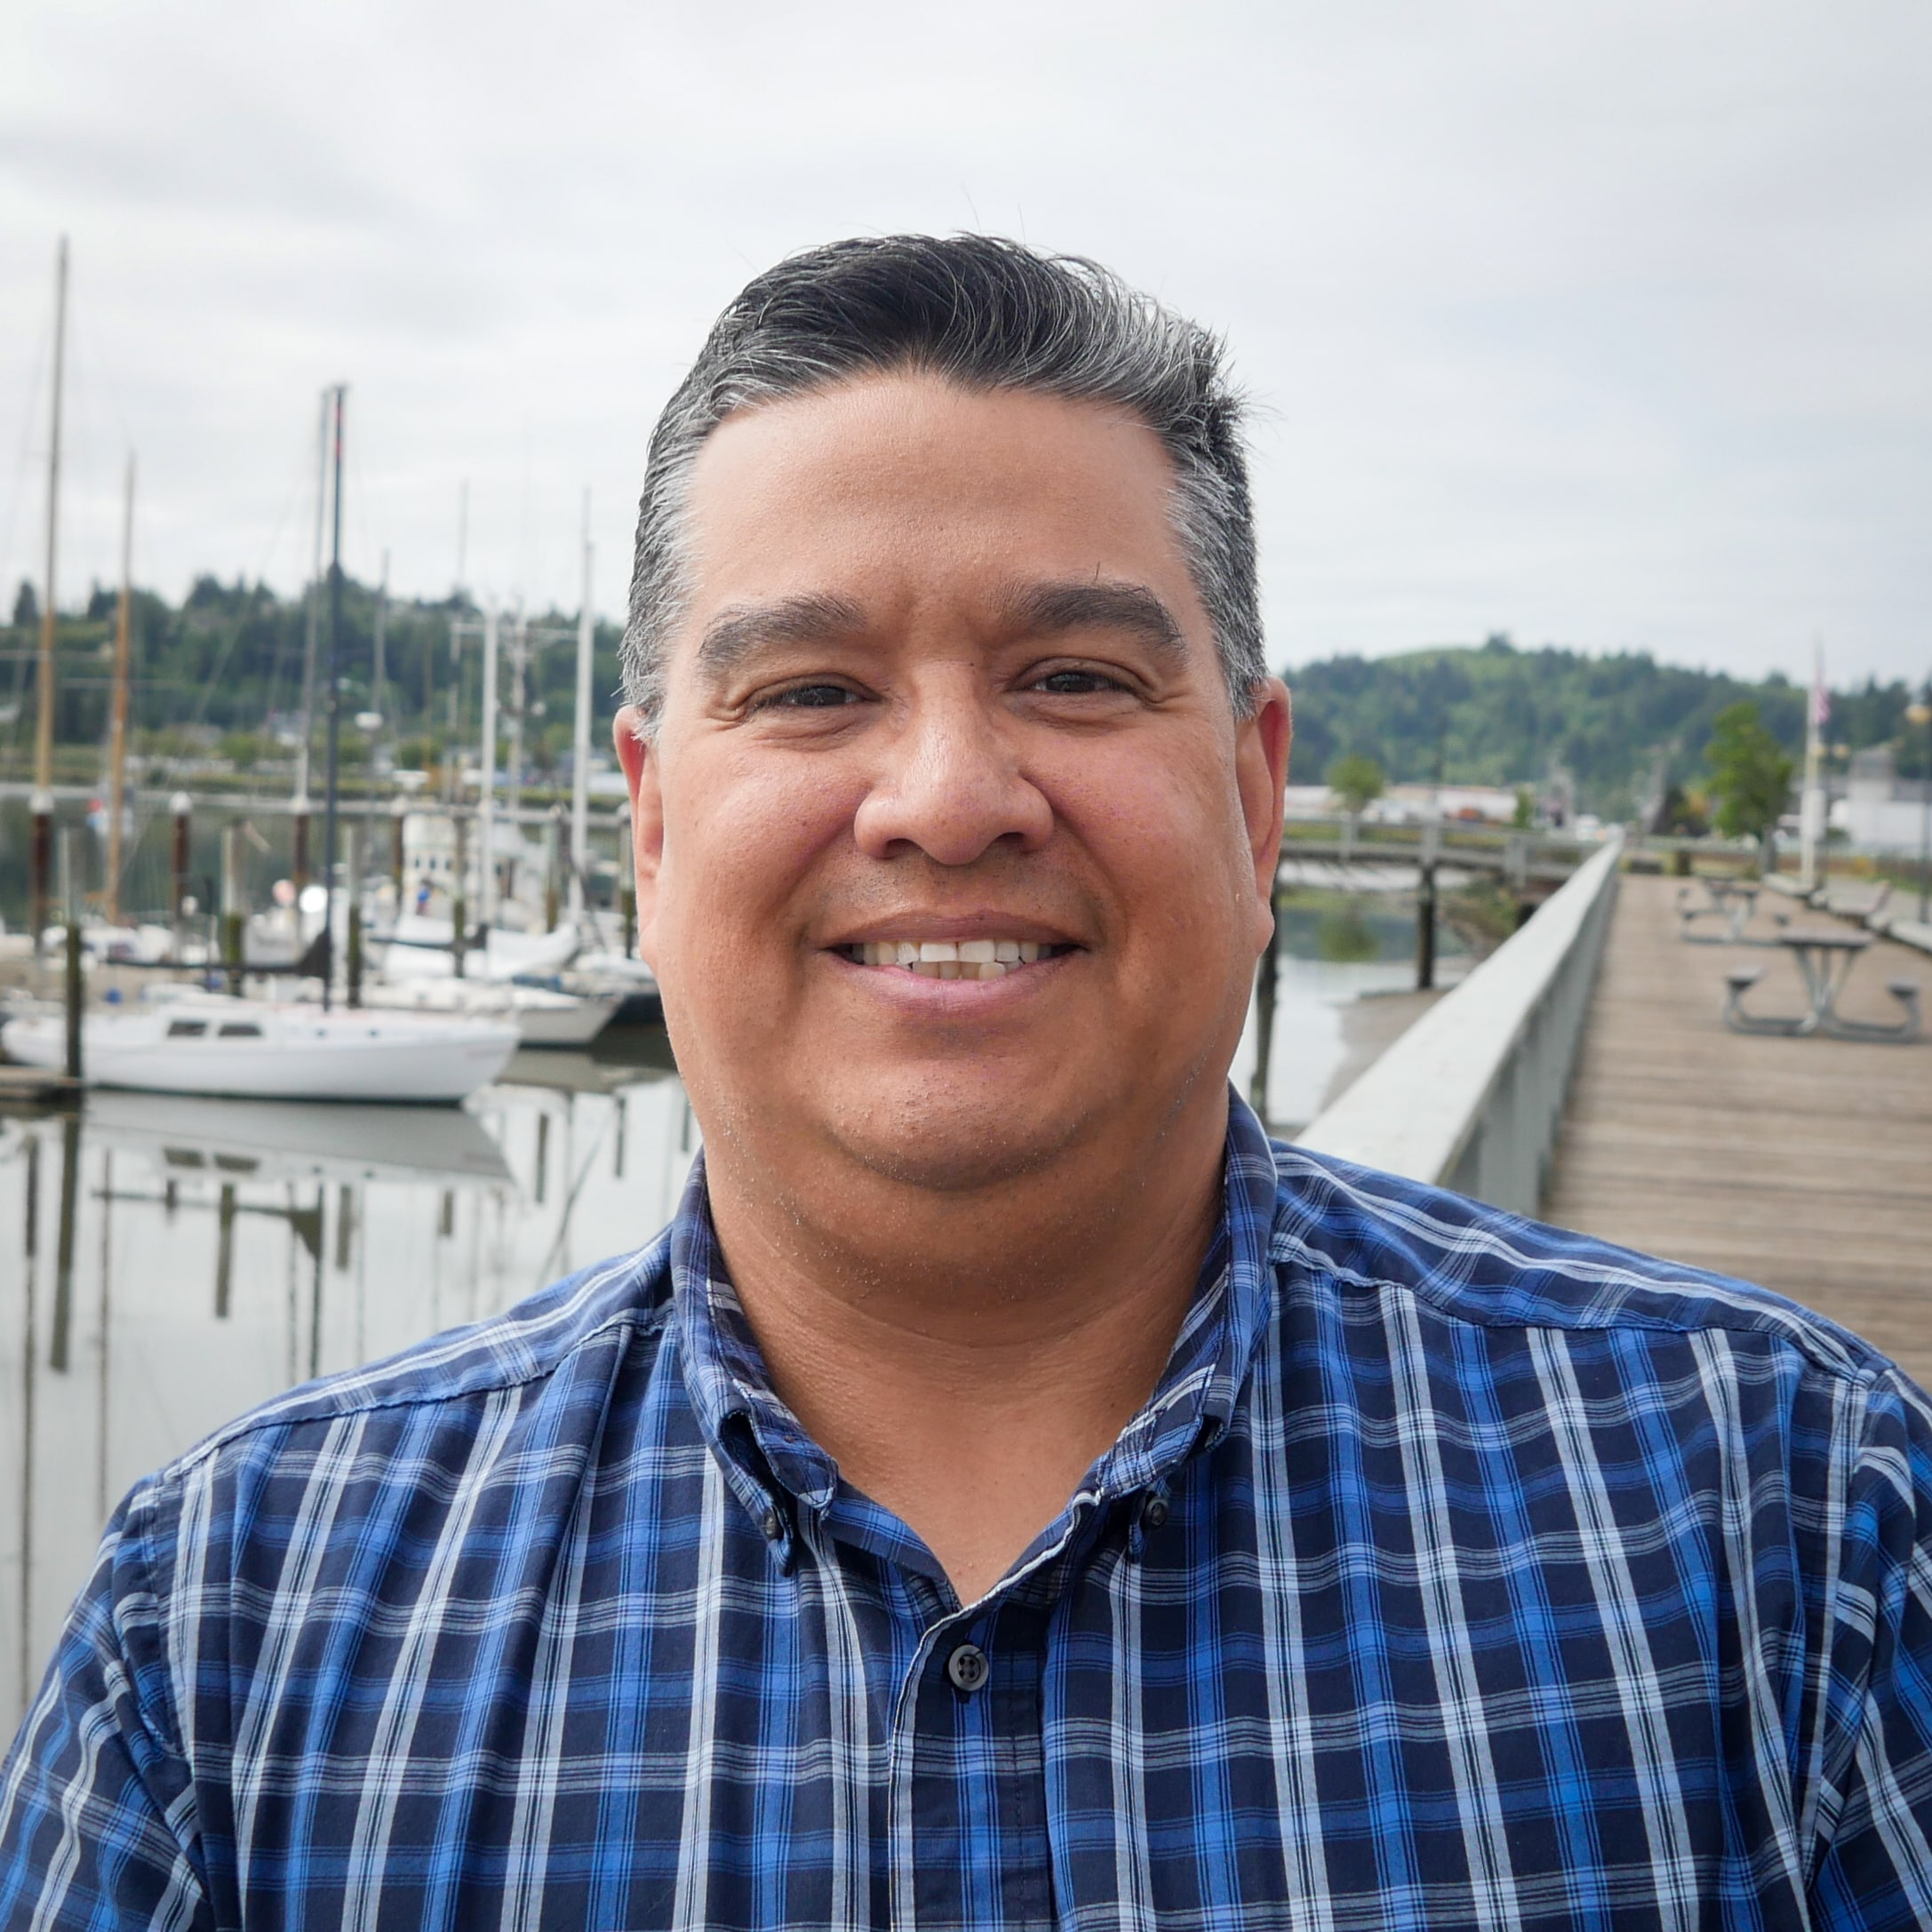 RICH LOPEZ, OPERATIONS MANAGER